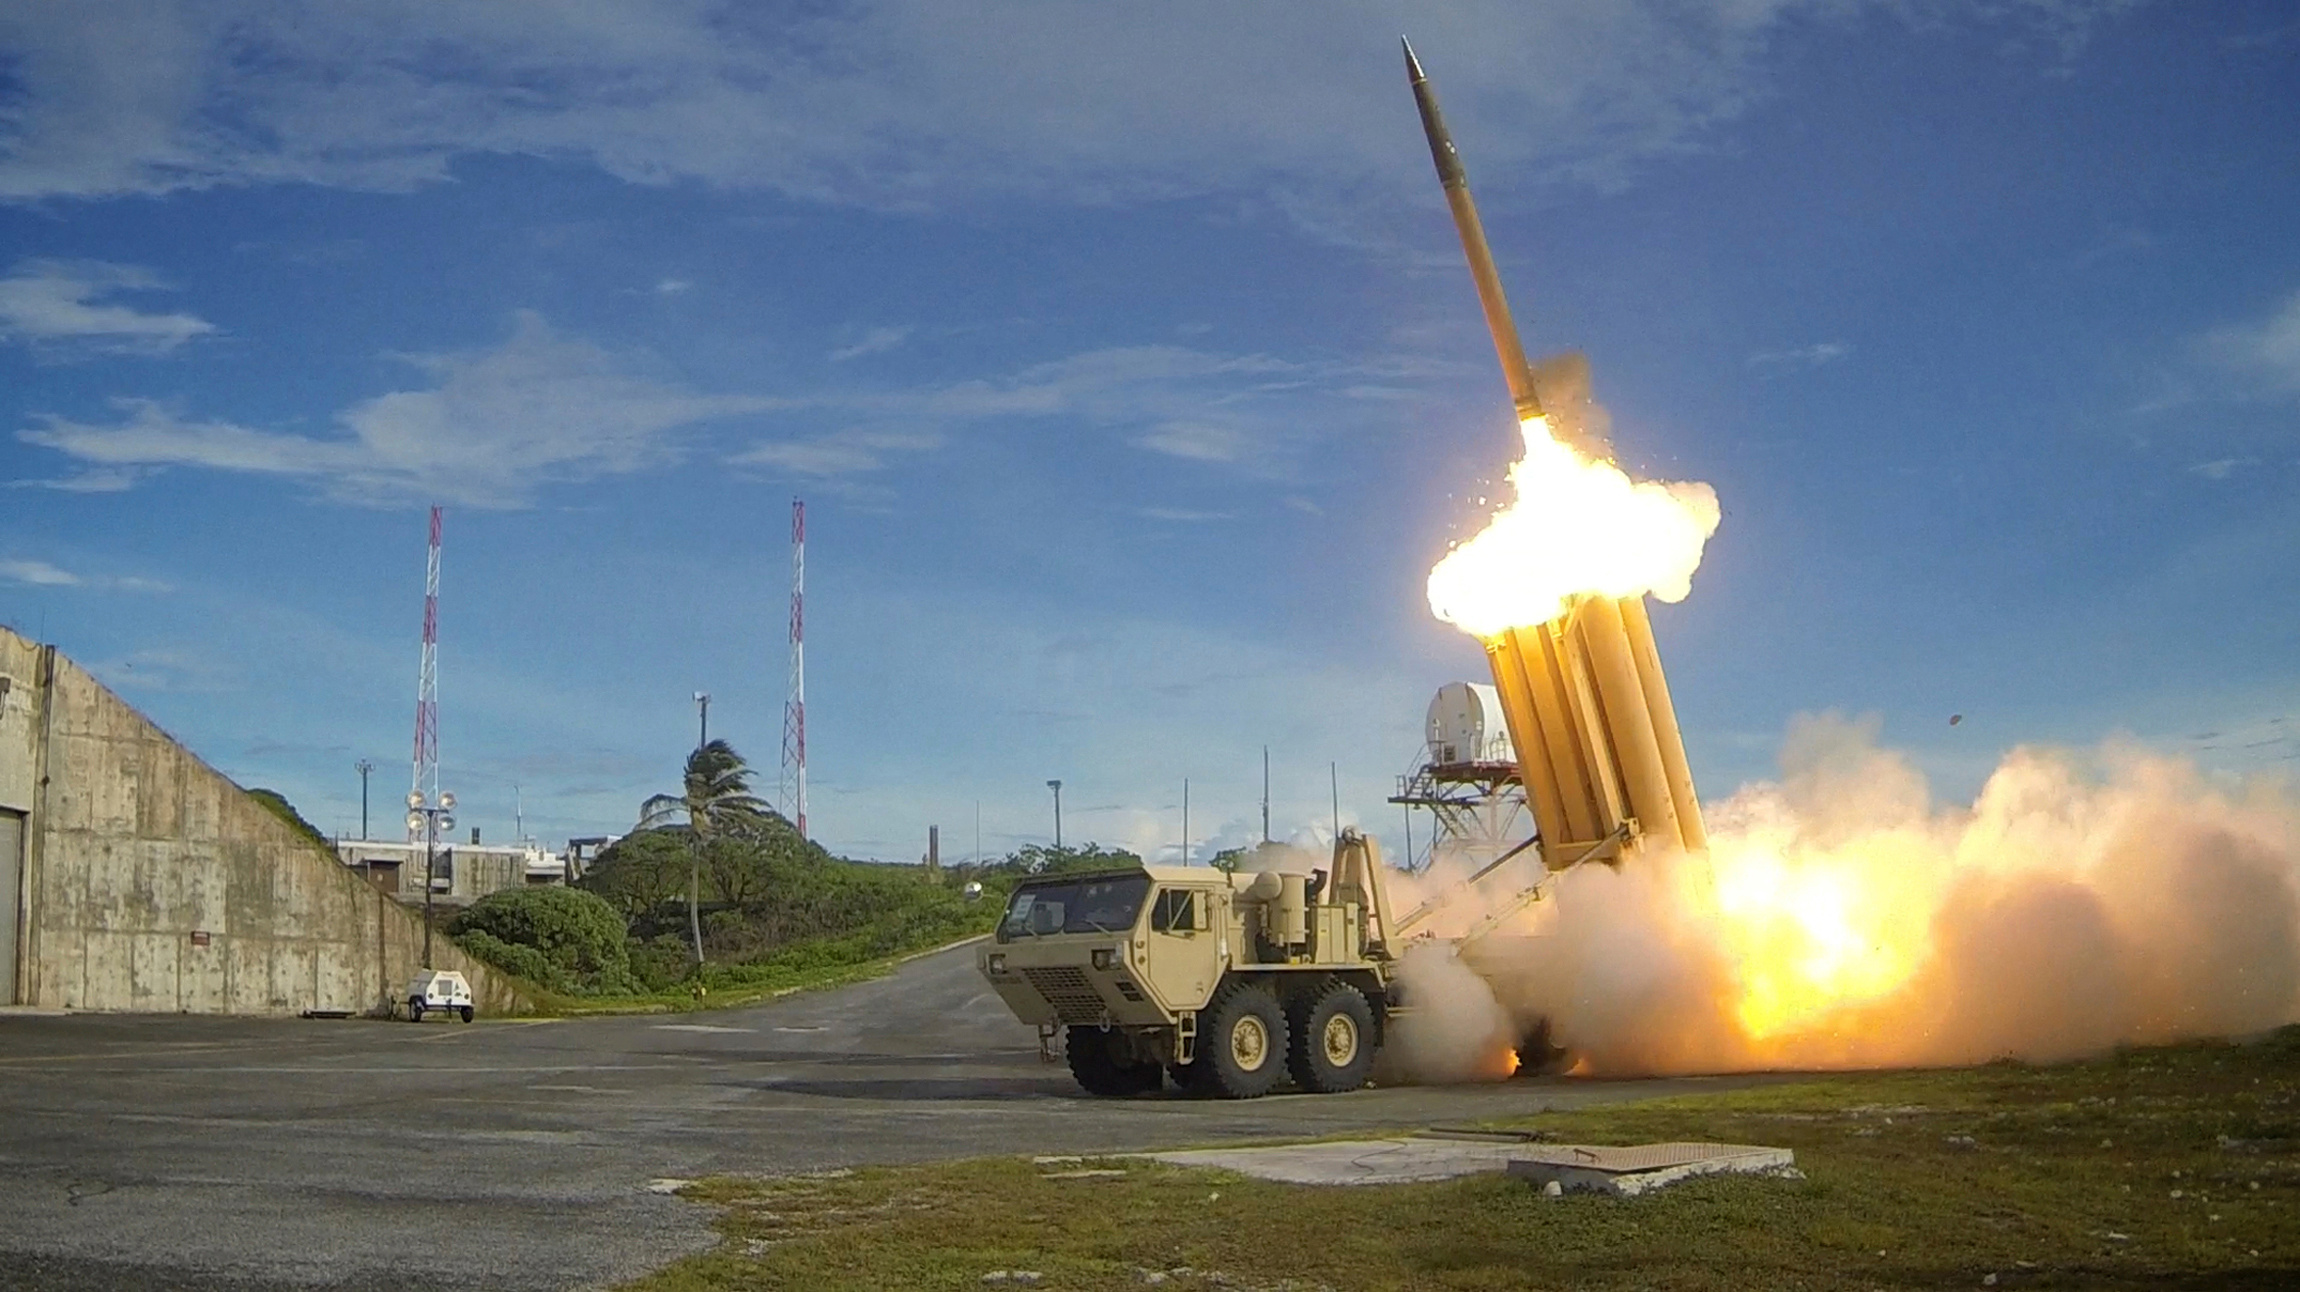 A Terminal High Altitude Area Defense (THAAD) interceptor is launched during a successful intercept test, in this undated handout photo provided by the U.S. Department of Defense's Missile Defense Agency.